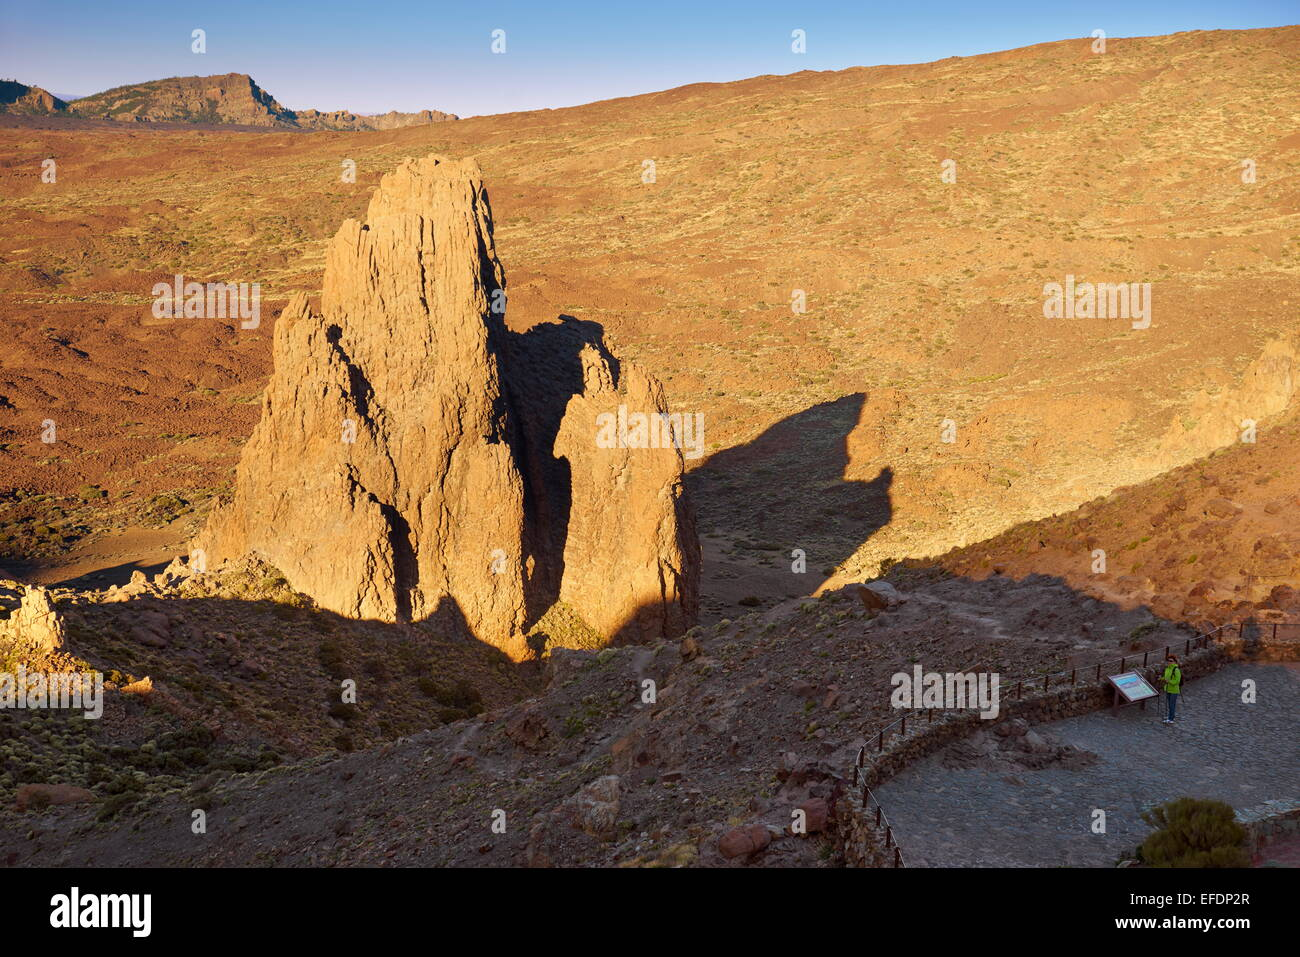 Rock formation in Teide National Park, Tenerife, Canary Islands, Spain - Stock Image